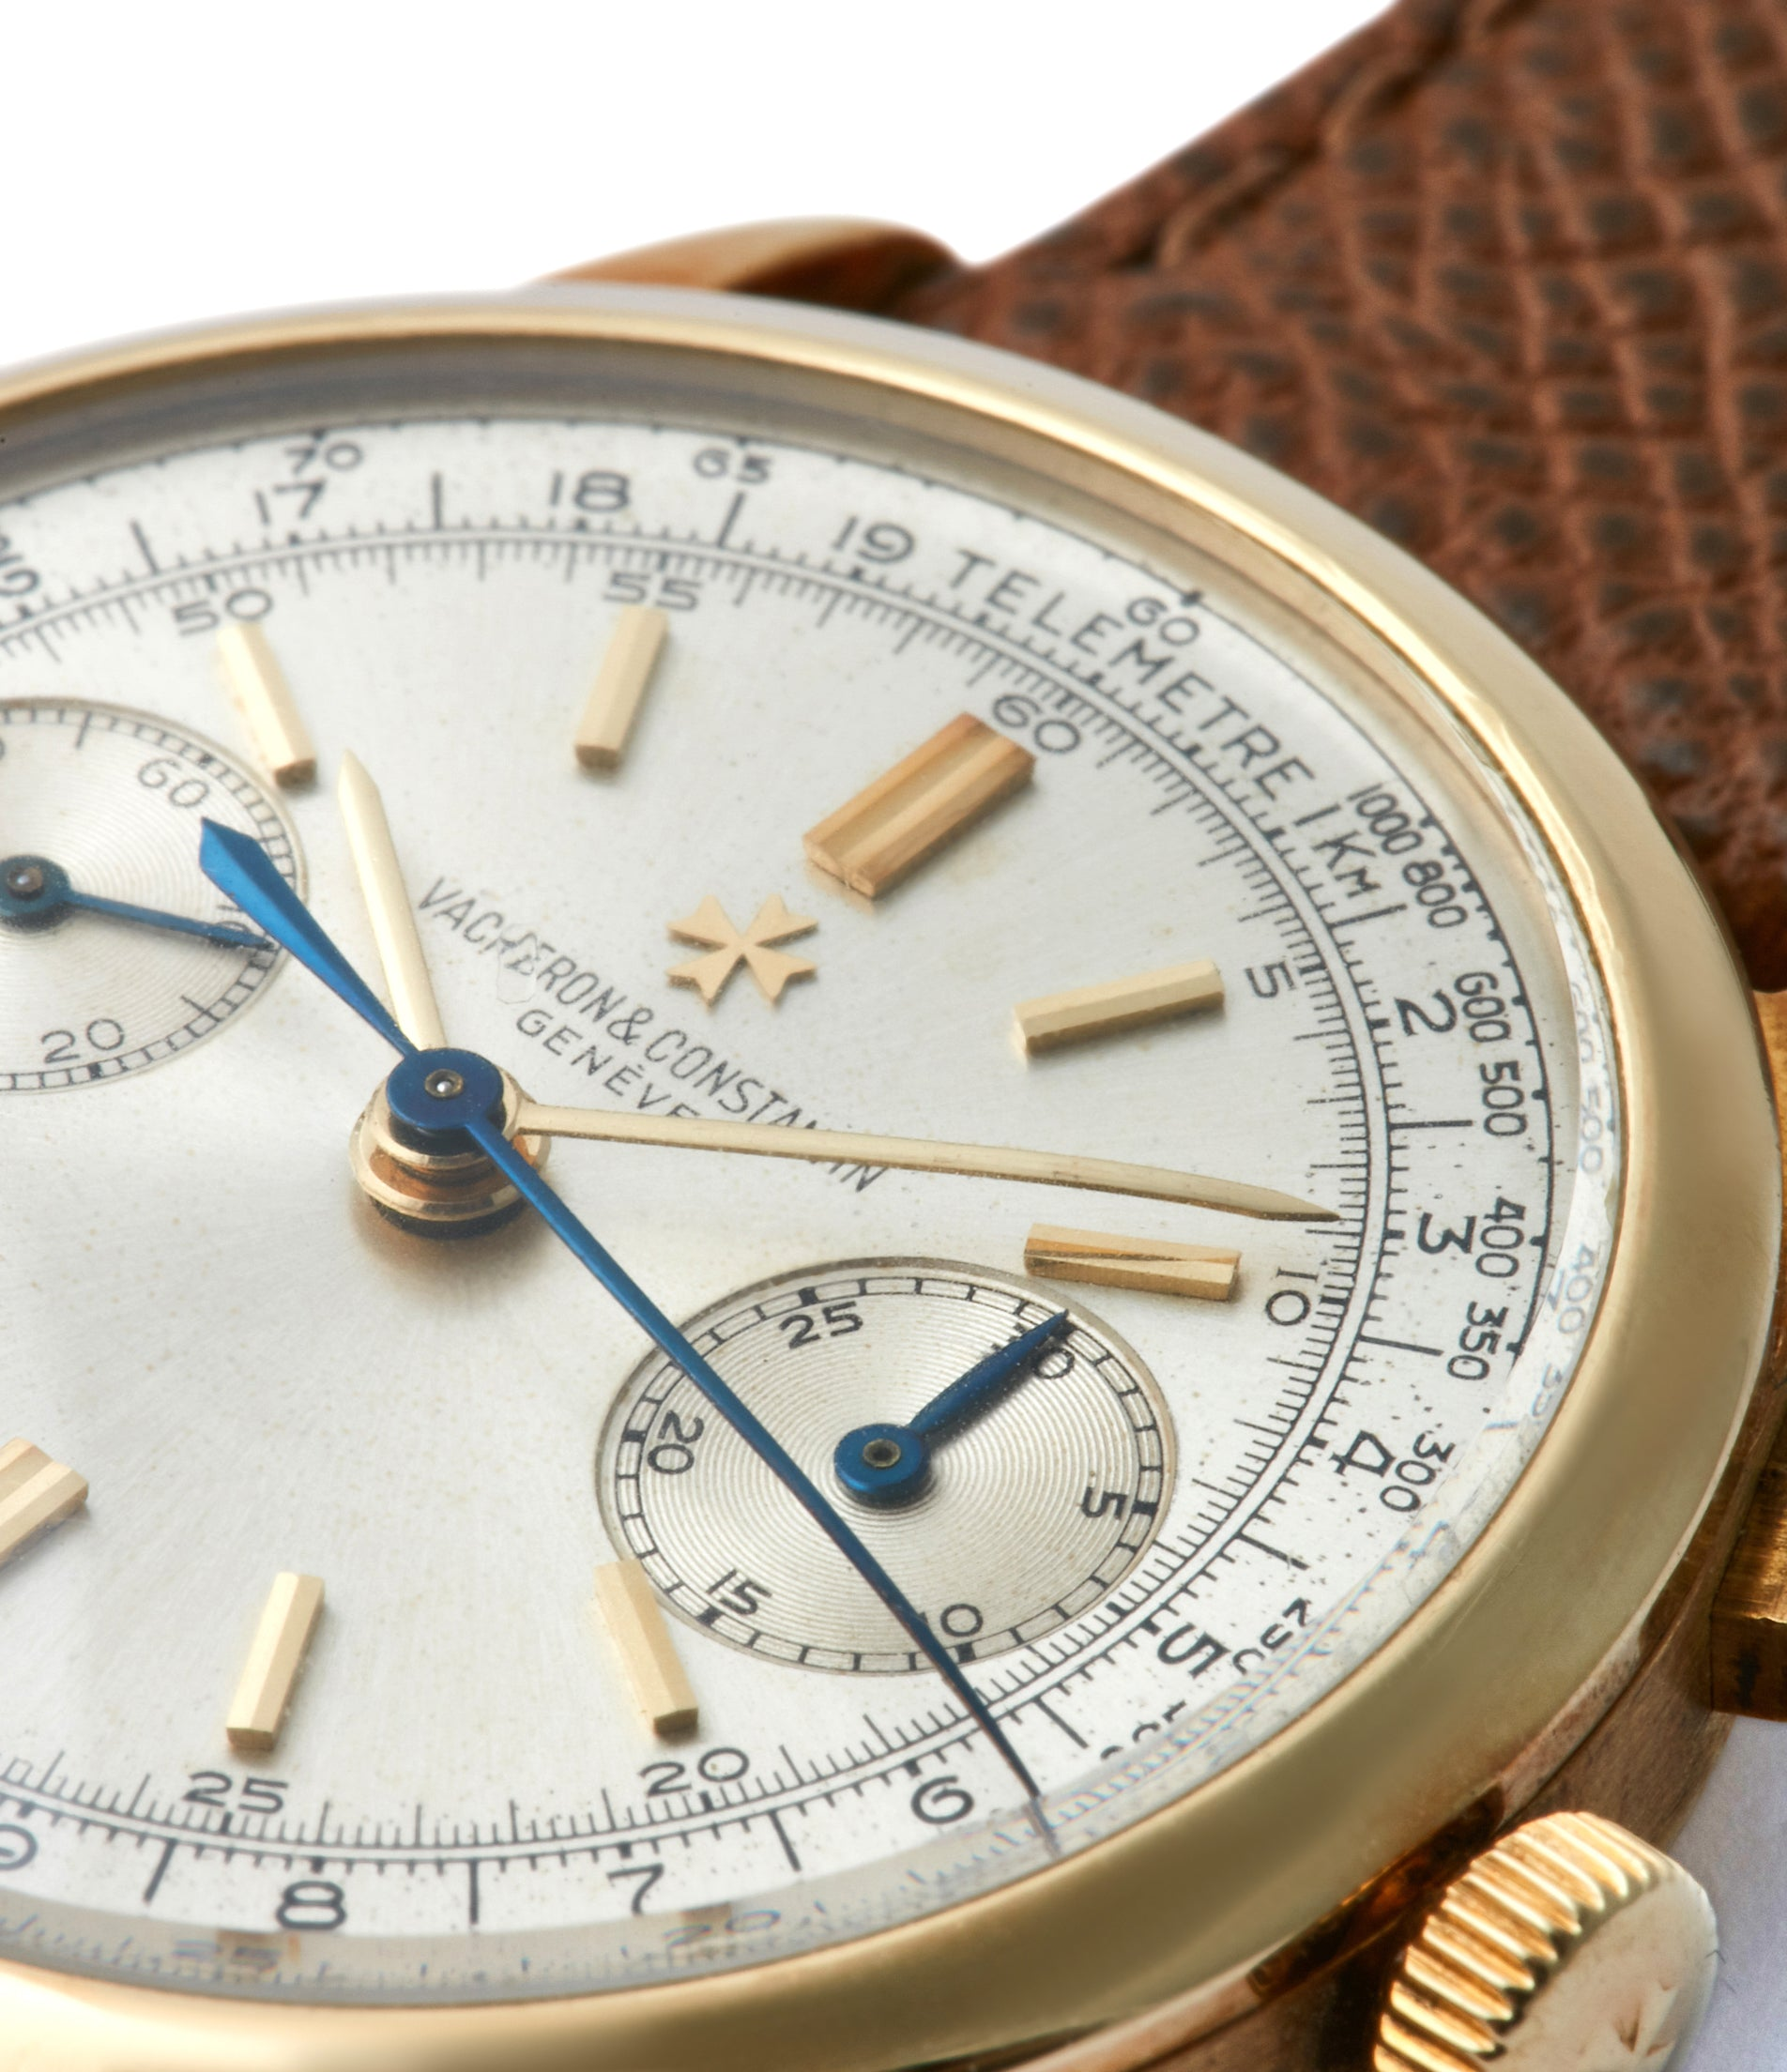 silver dial Vacheron Constantin Chronograph Ref. 4072 yellow gold rare vintage dress watch for sale A Collected Man London British specialist rare watches